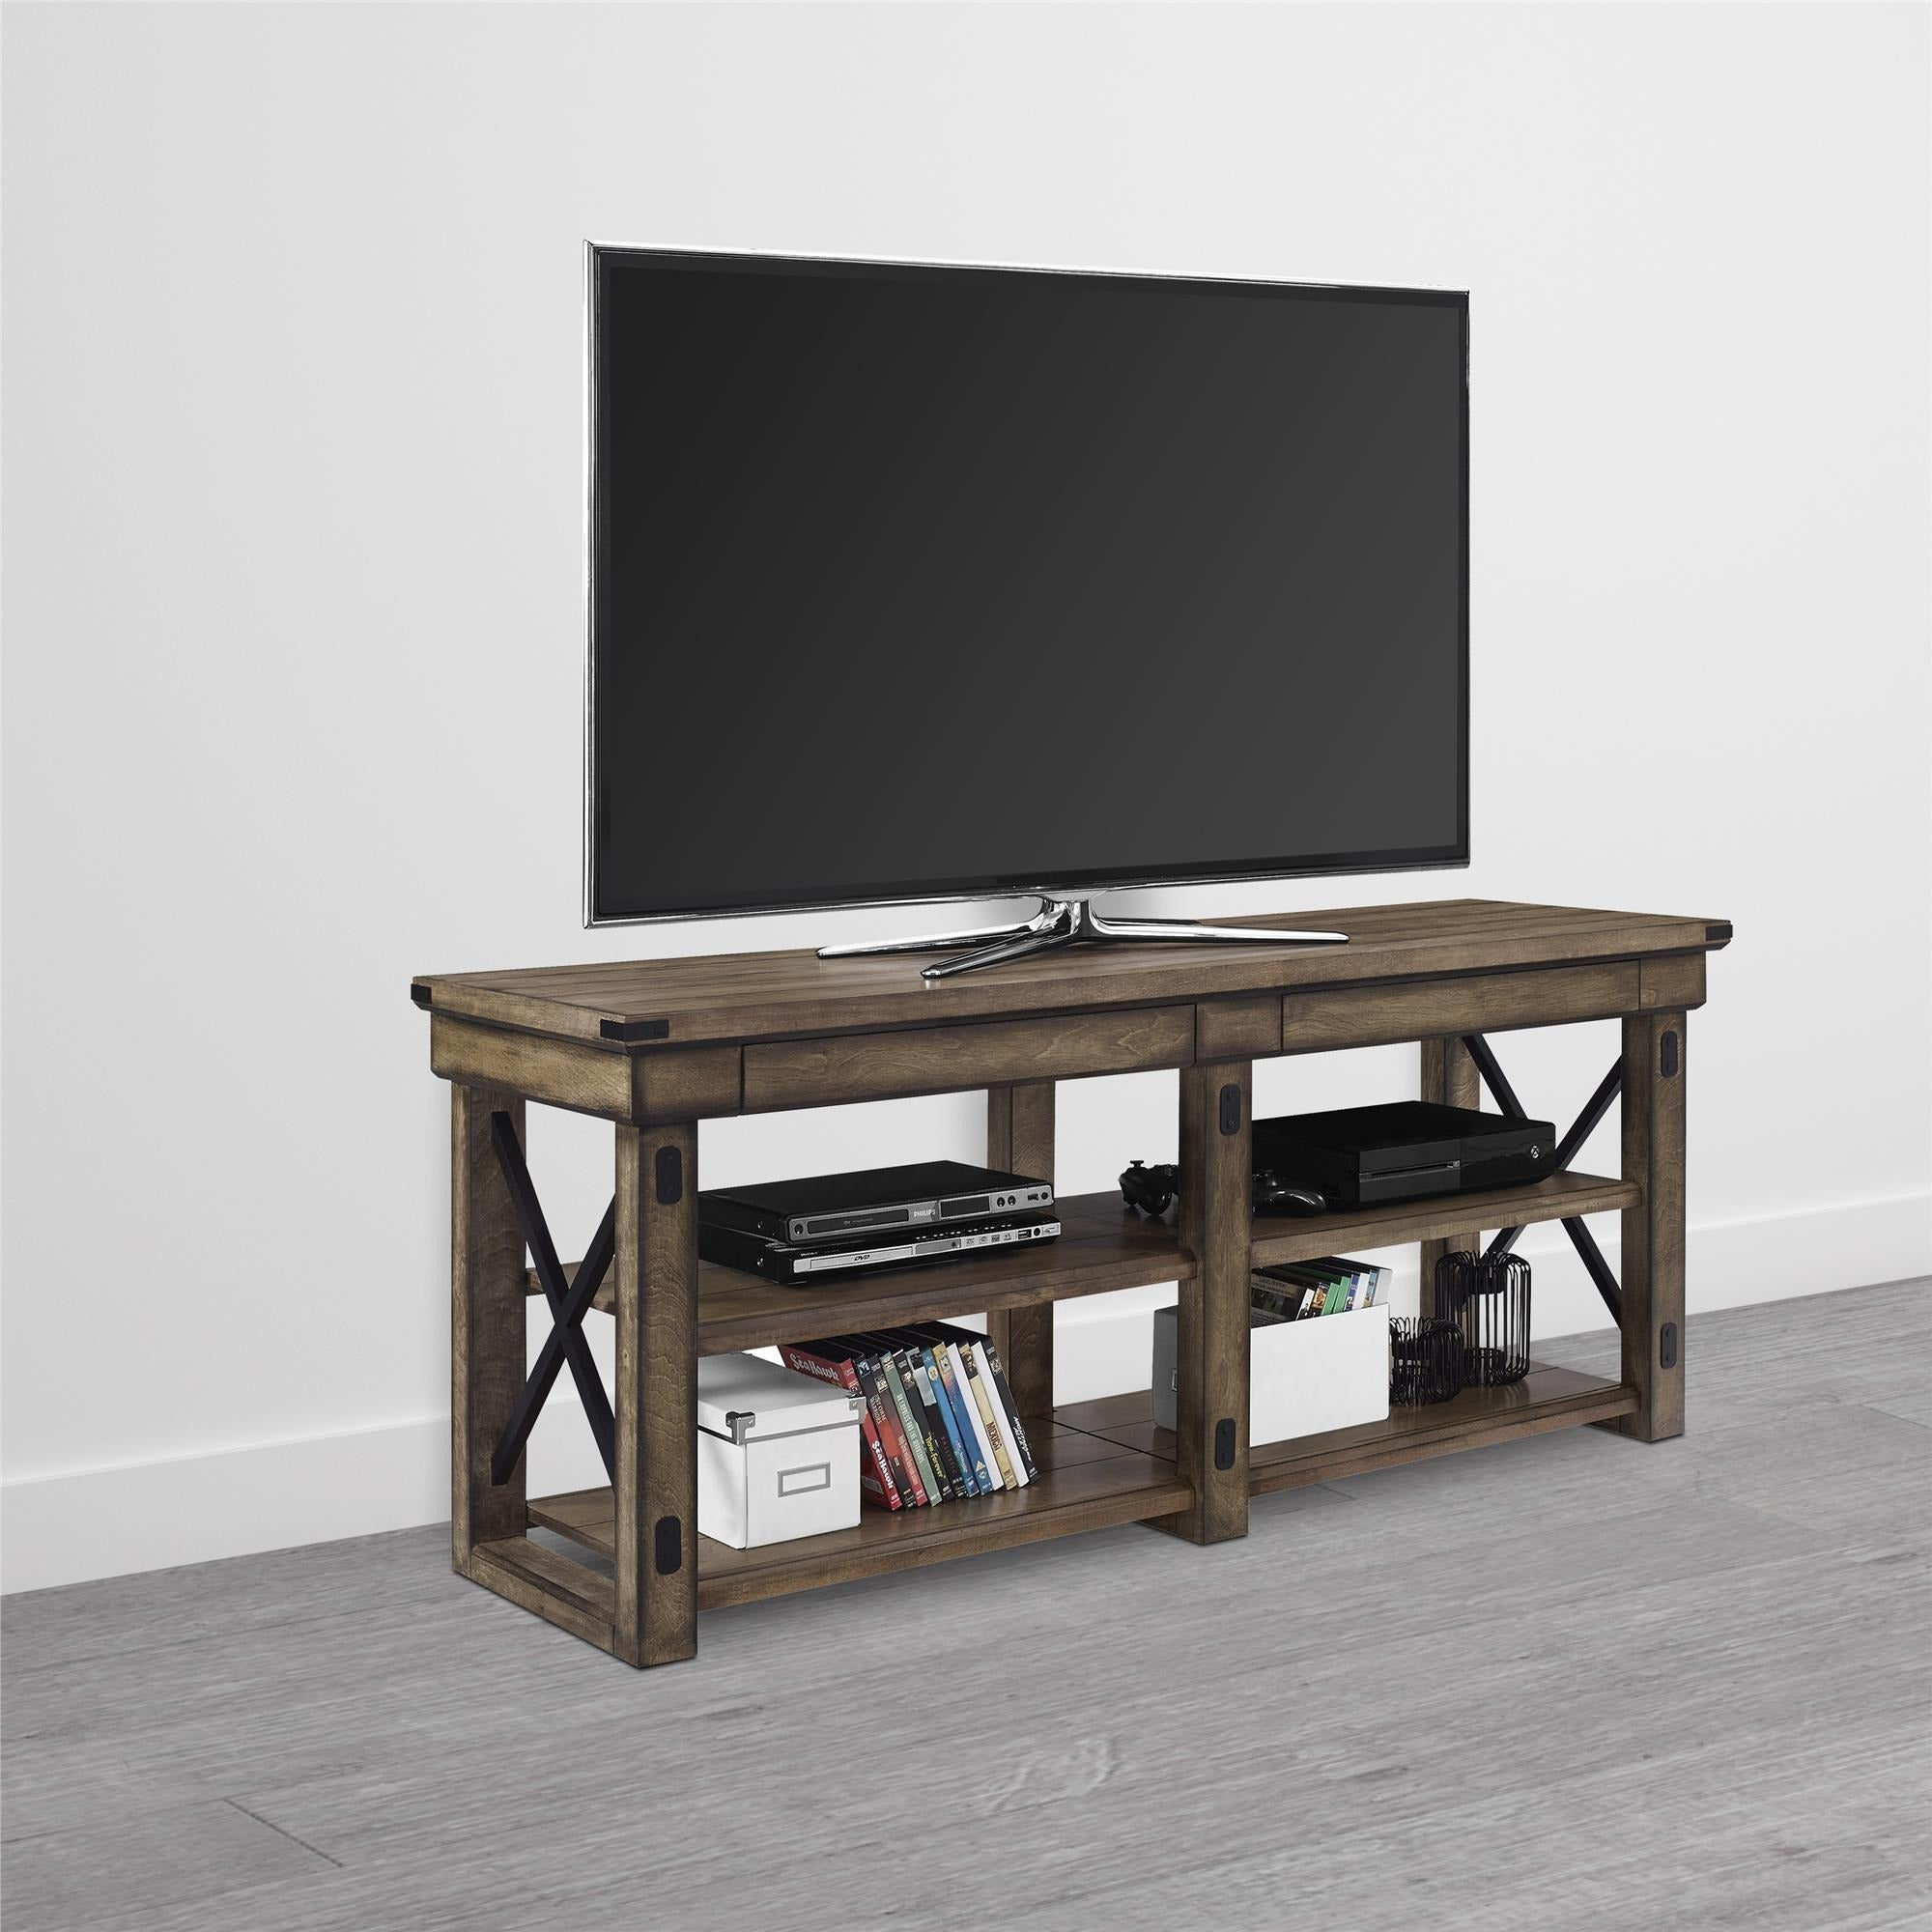 Shop Avenue Greene Woodgate Wood Veneer Tv Stand For Tvs Up To 65